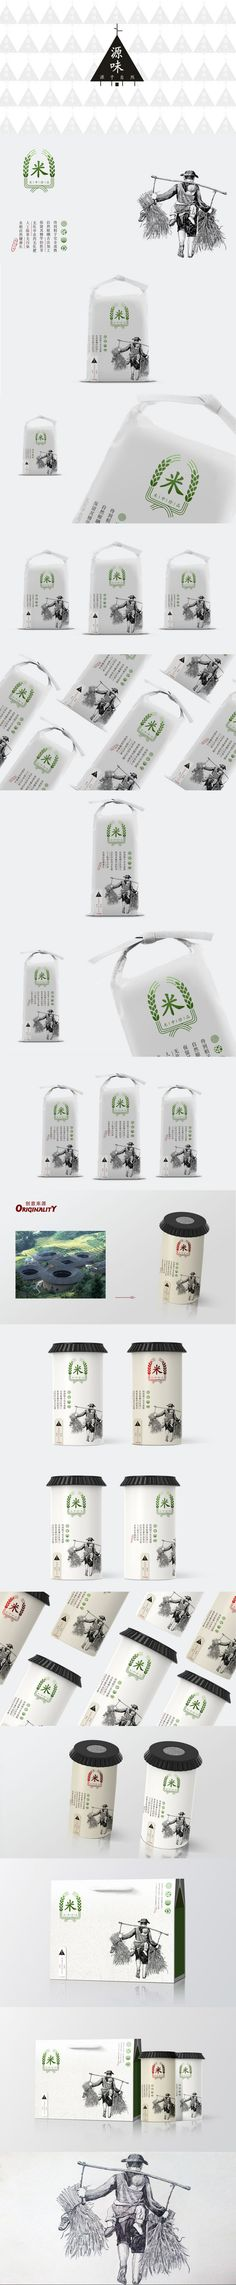 源味-大米包装设计 Rice harvesting story on packaging PD